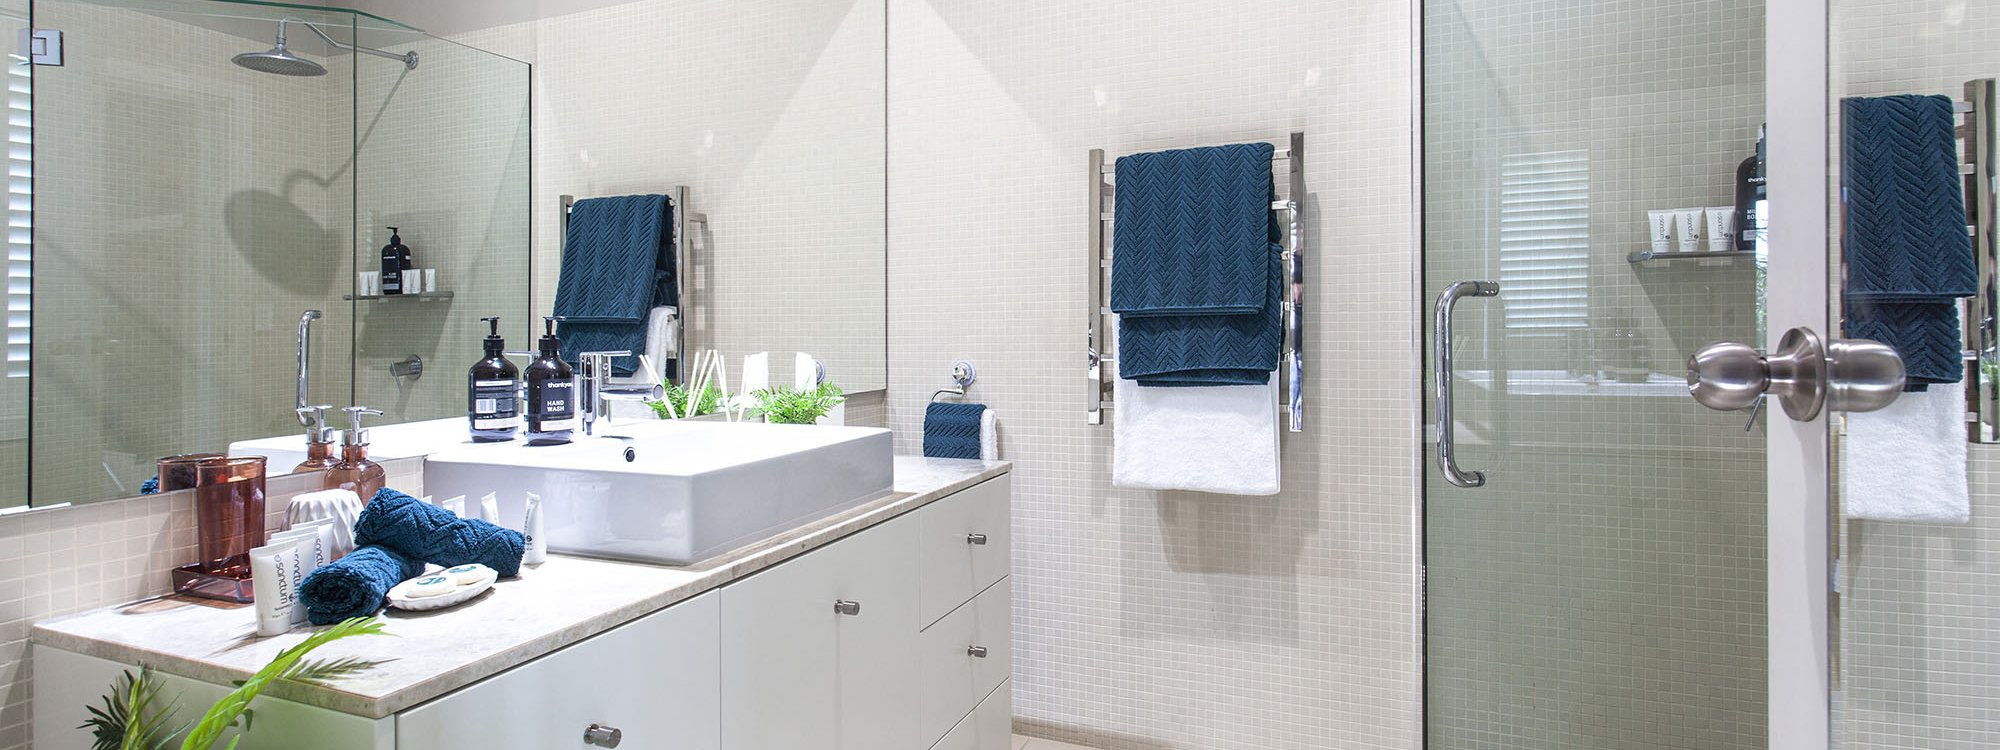 The Palms at Byron - Byron Bay - Master ensuite